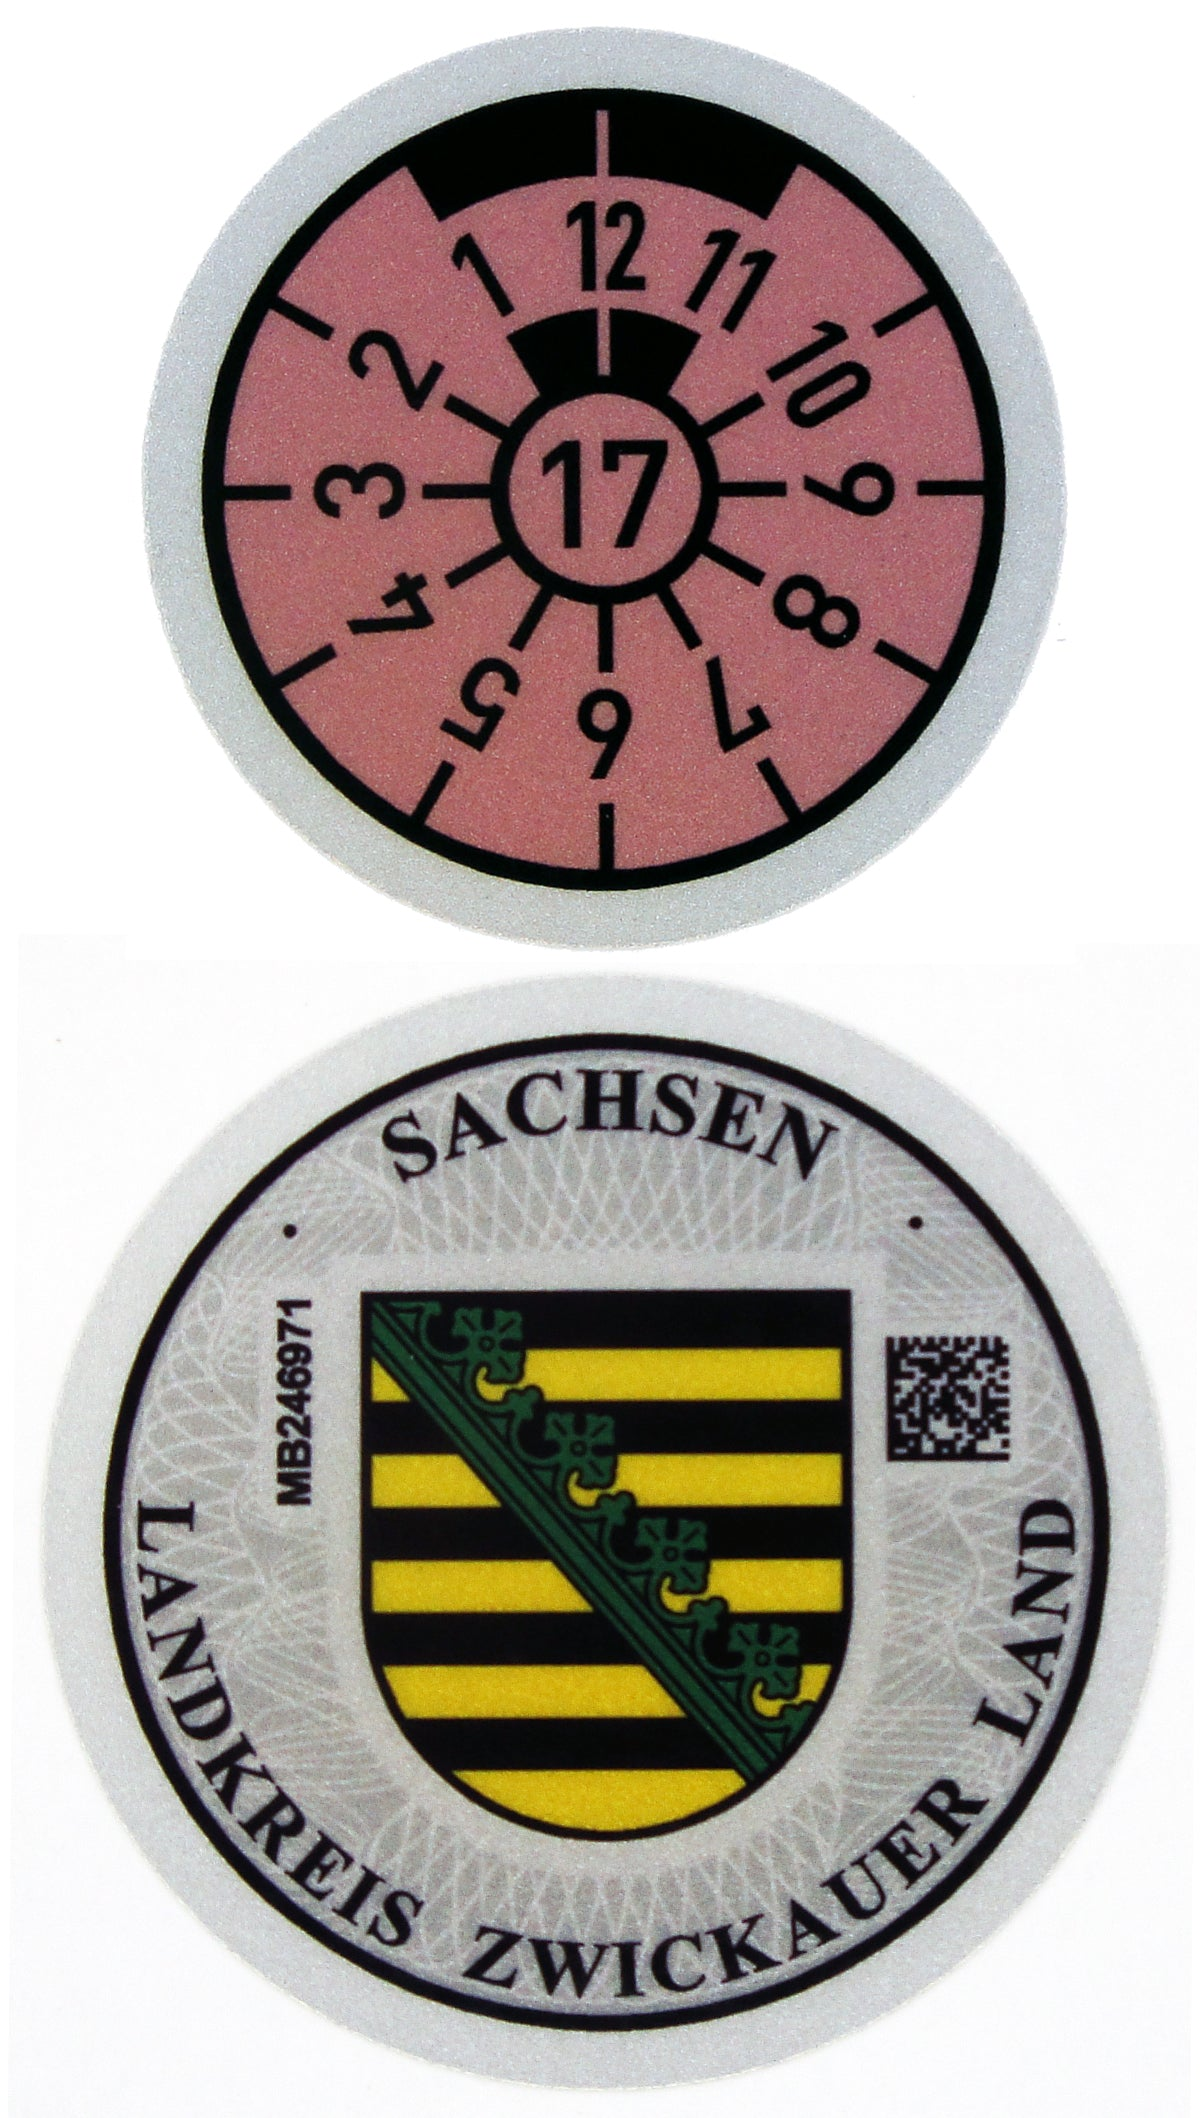 Zwickauer Land - German License Plate Registration Seal (Z)